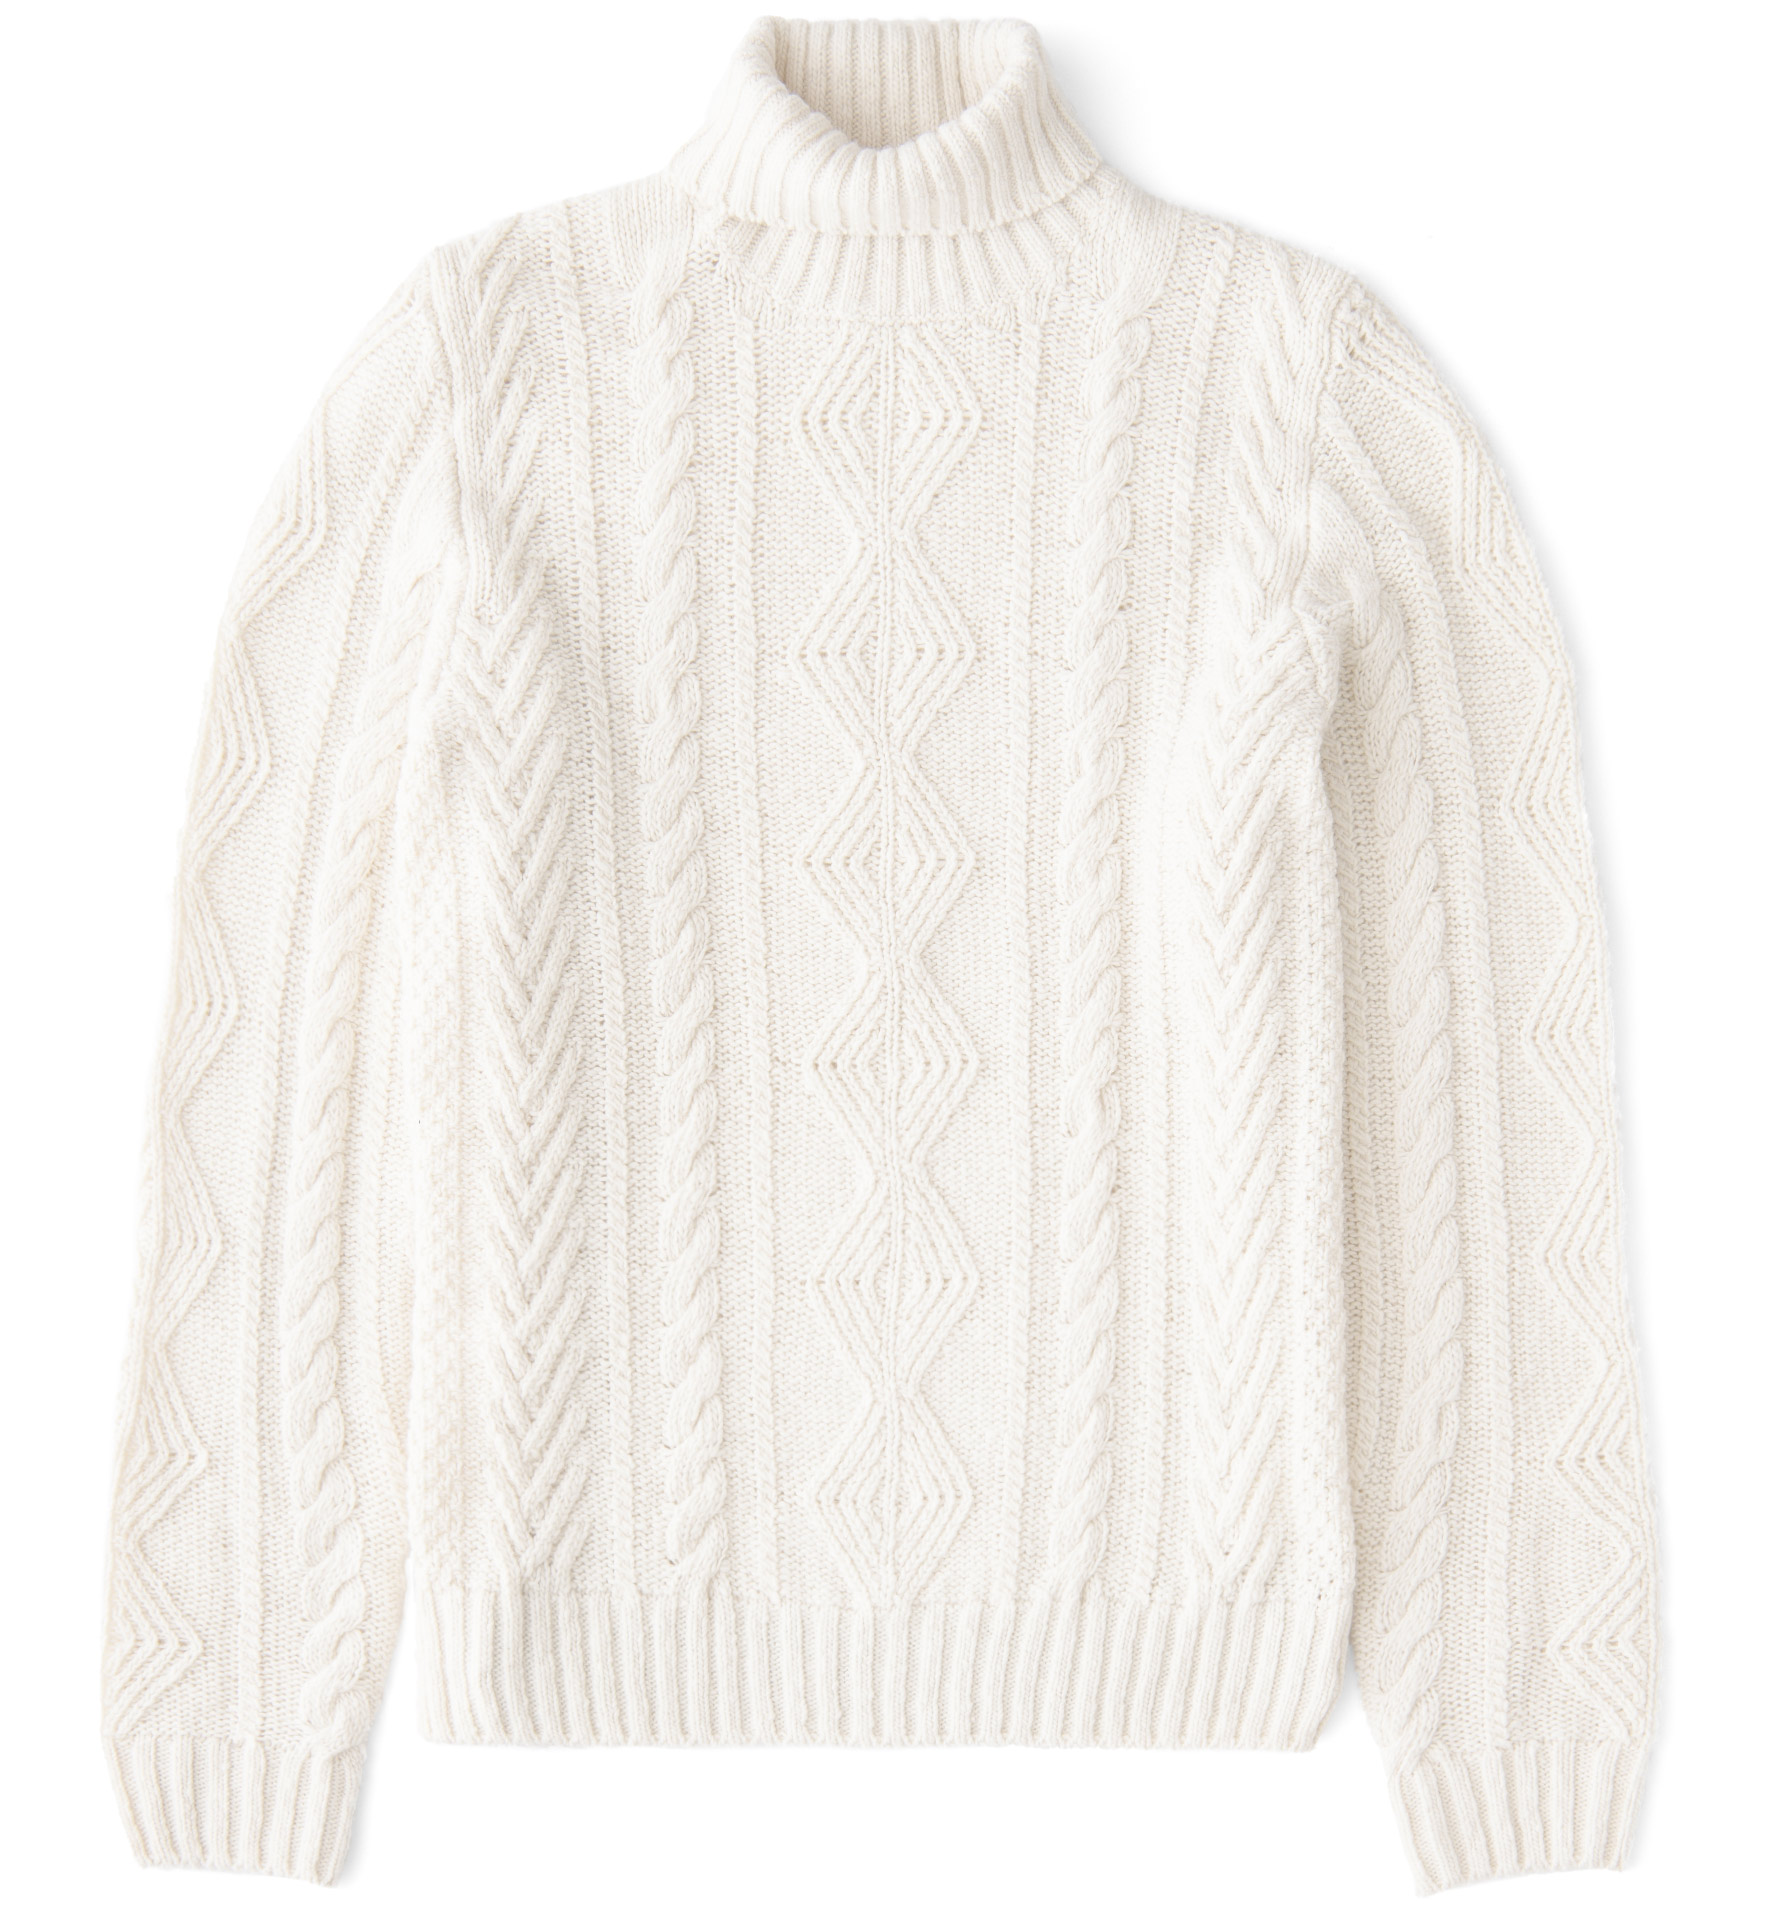 Zoom Image of Cream Donegal Wool and Cashmere Aran Turtleneck Sweater